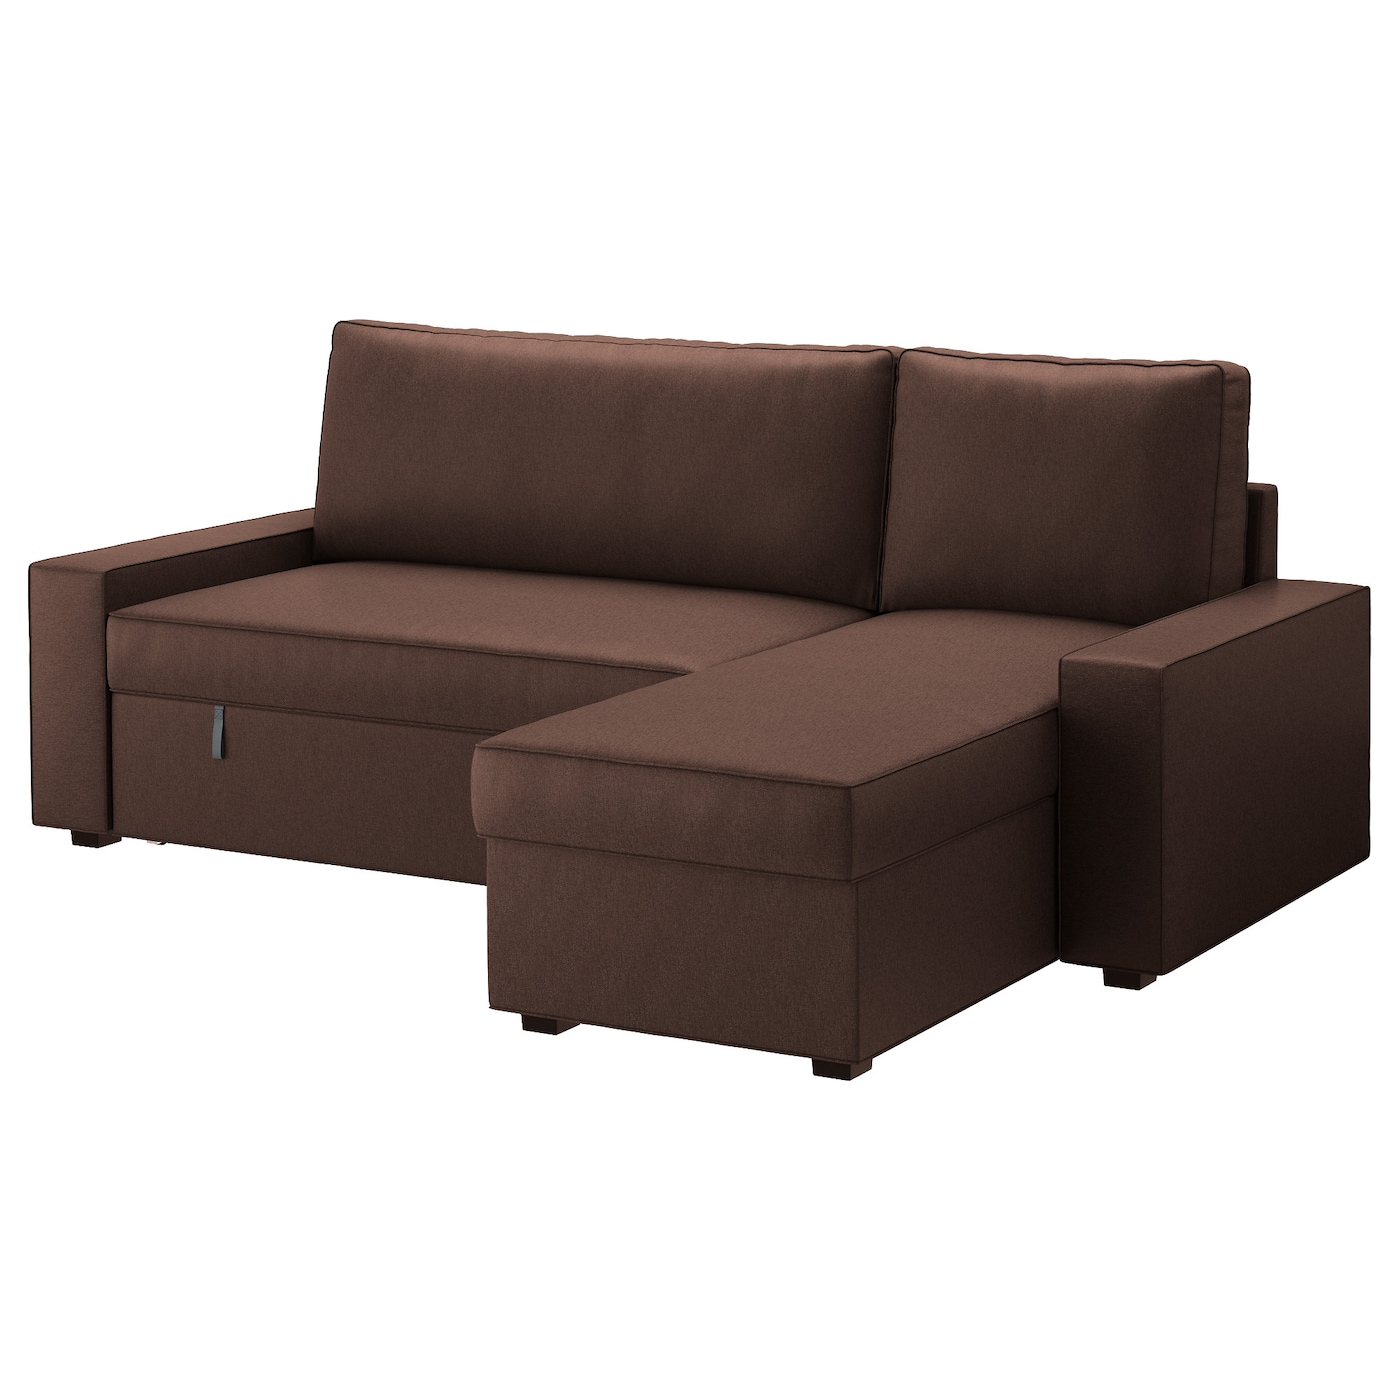 Vilasund sofa bed with chaise longue borred dark brown ikea - Chaise longue hesperide ...